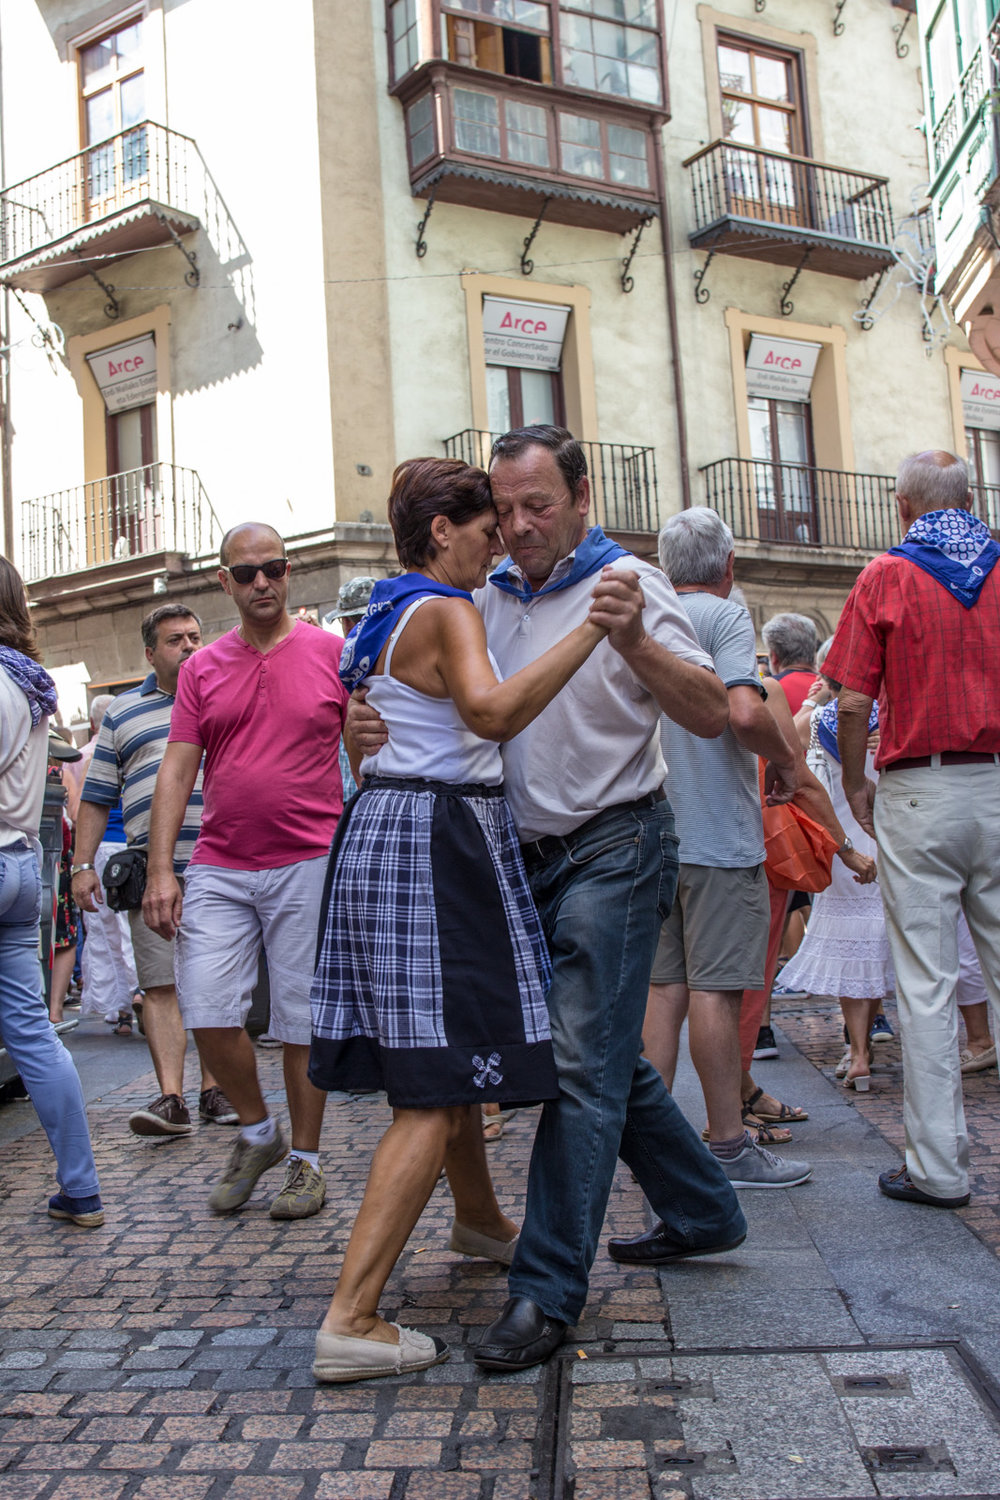 """Dancing in the heart of Aste Nagusia, Bilbao 2015. This piece will be exhibited in Institute Cervantes Dublin in collaboration with Photo Ireland under the """"Hispanic World"""" theme. May and June 2017"""